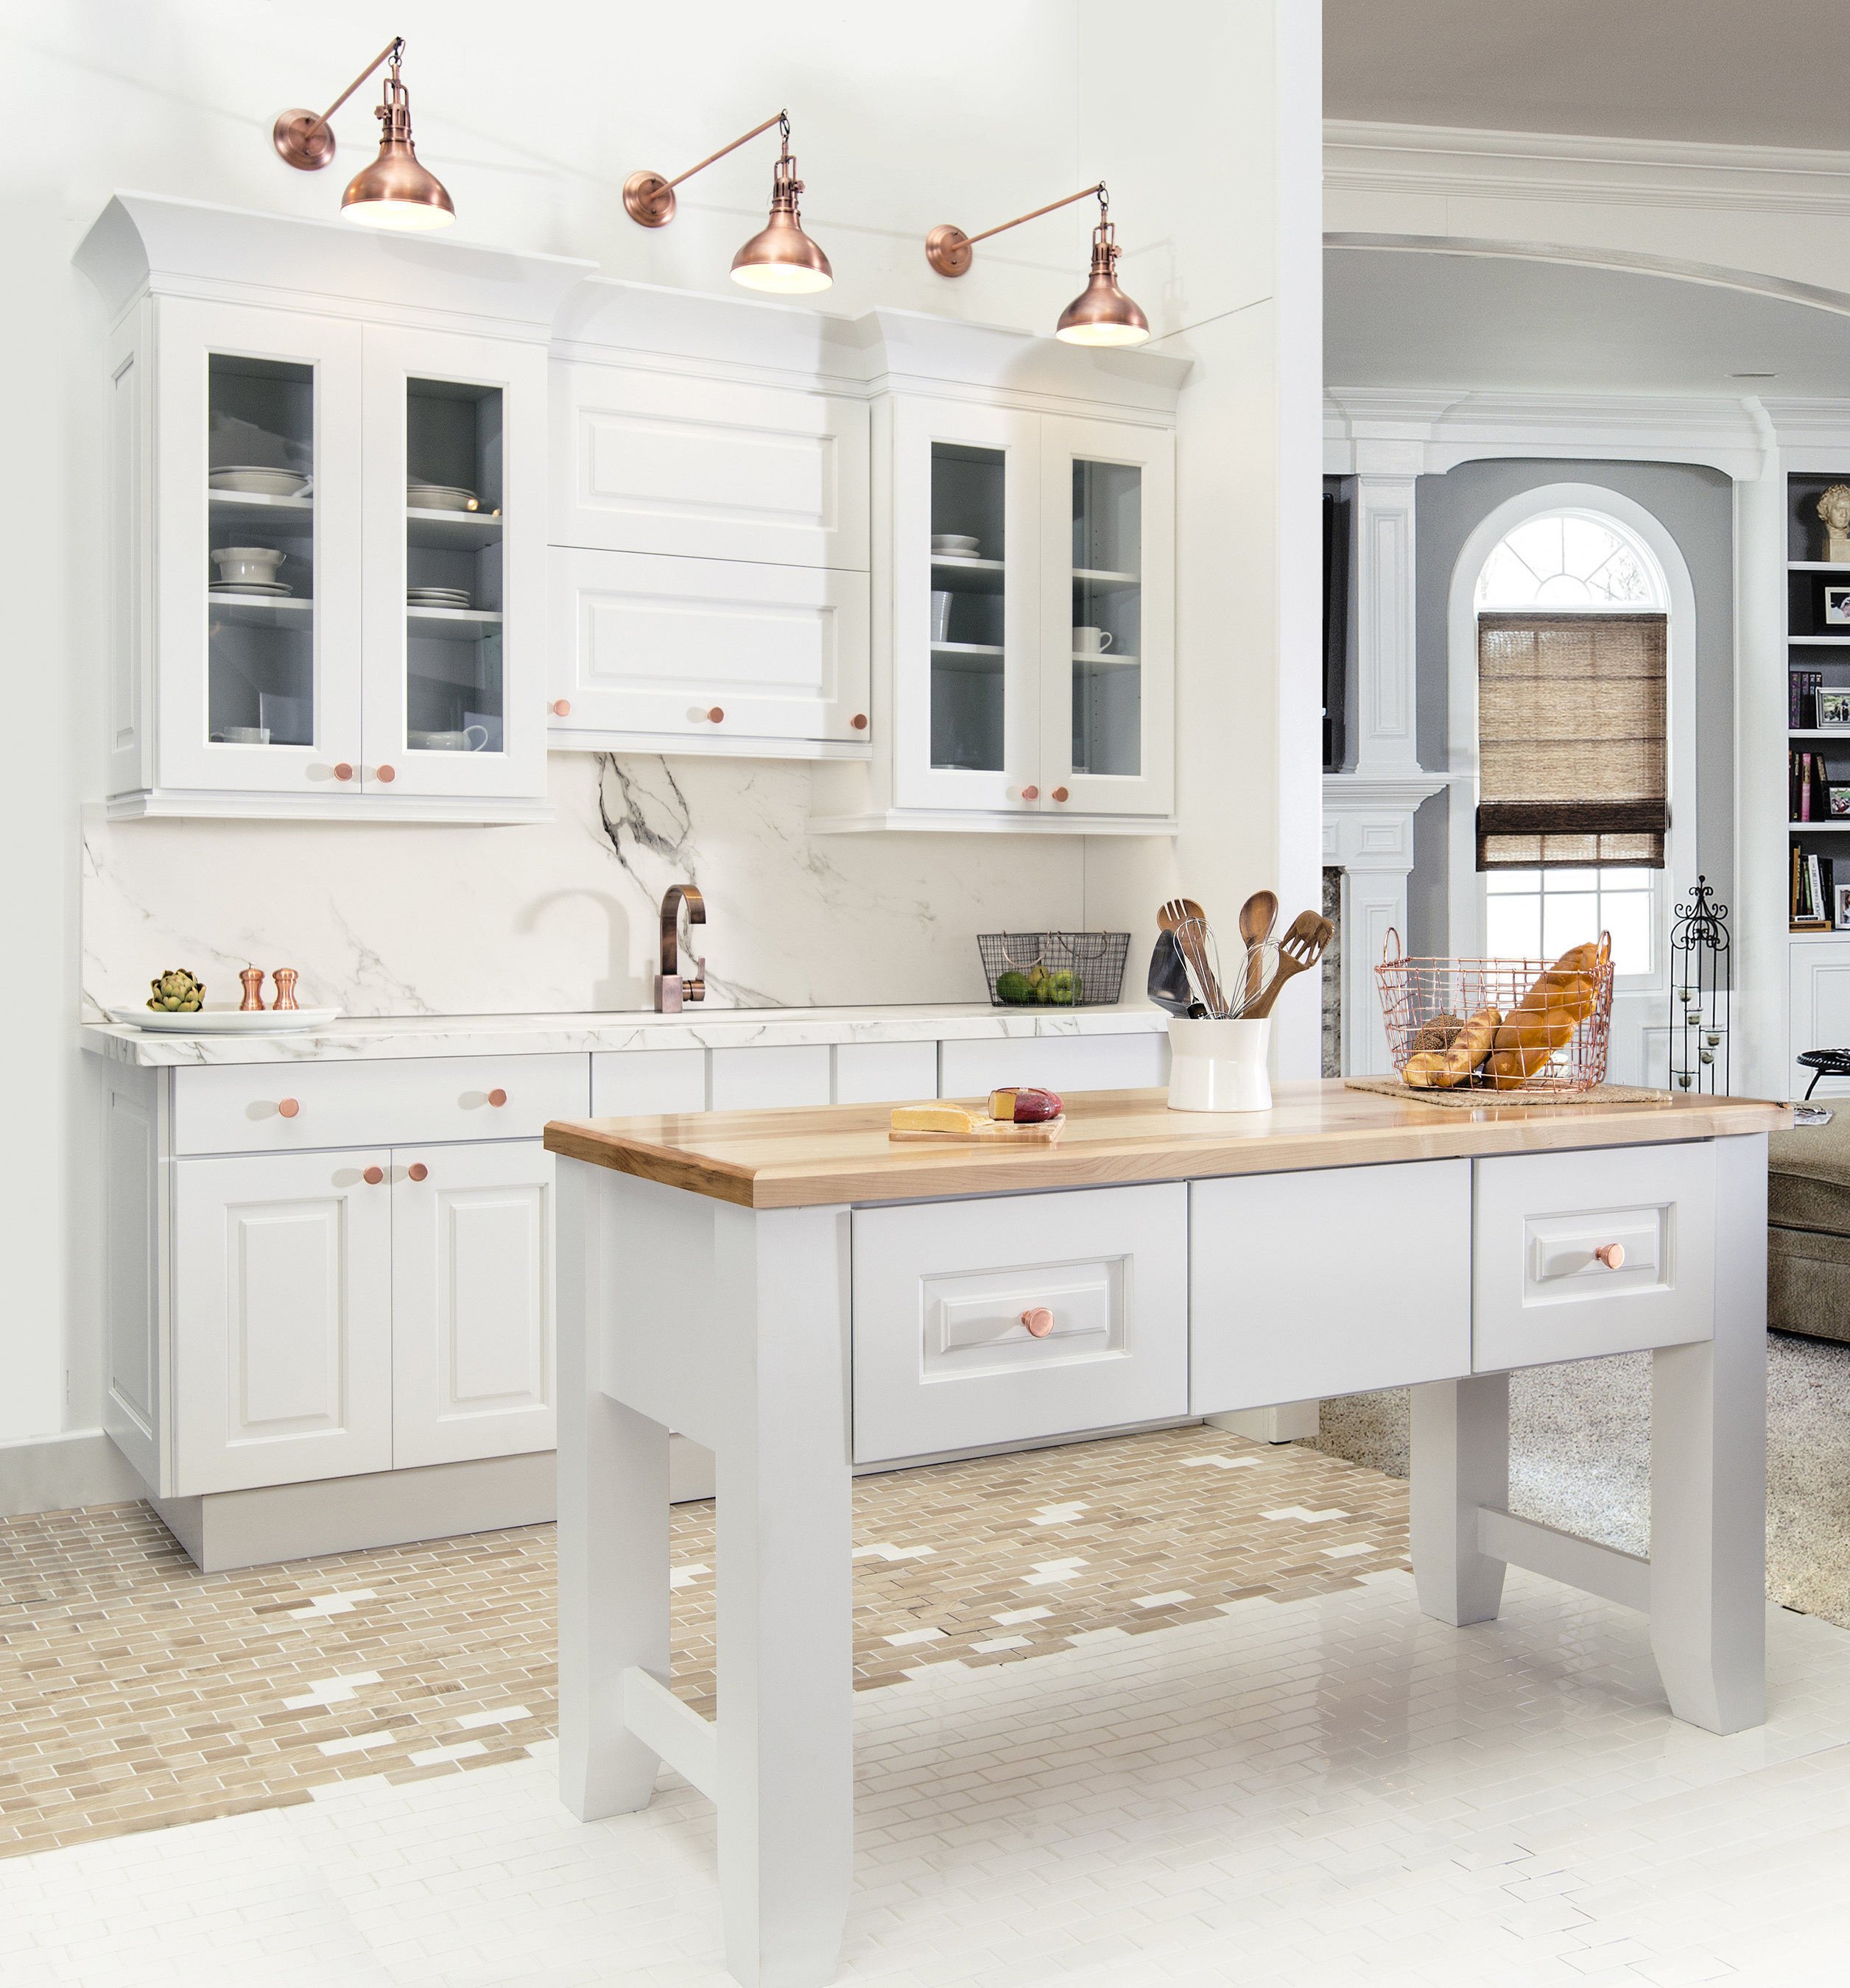 A timeless look displayed with Wellborn's new white paint called Porcelain!